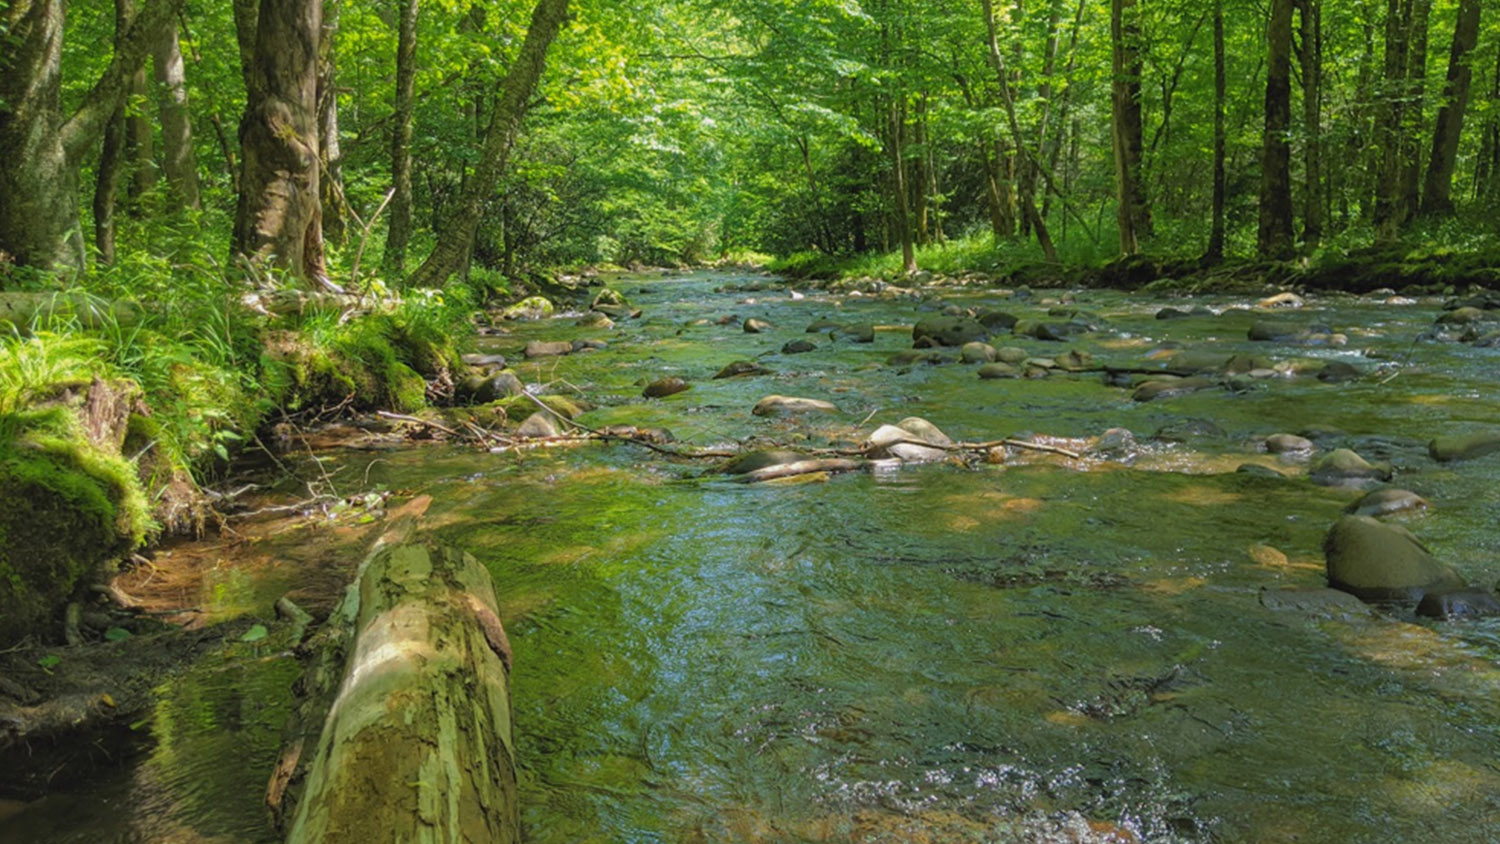 McIntire Stennis - Climate Adaptive Management for Forest Ecosystem Services: An Assessment of Future Forests - College of Natural Resources at NCState